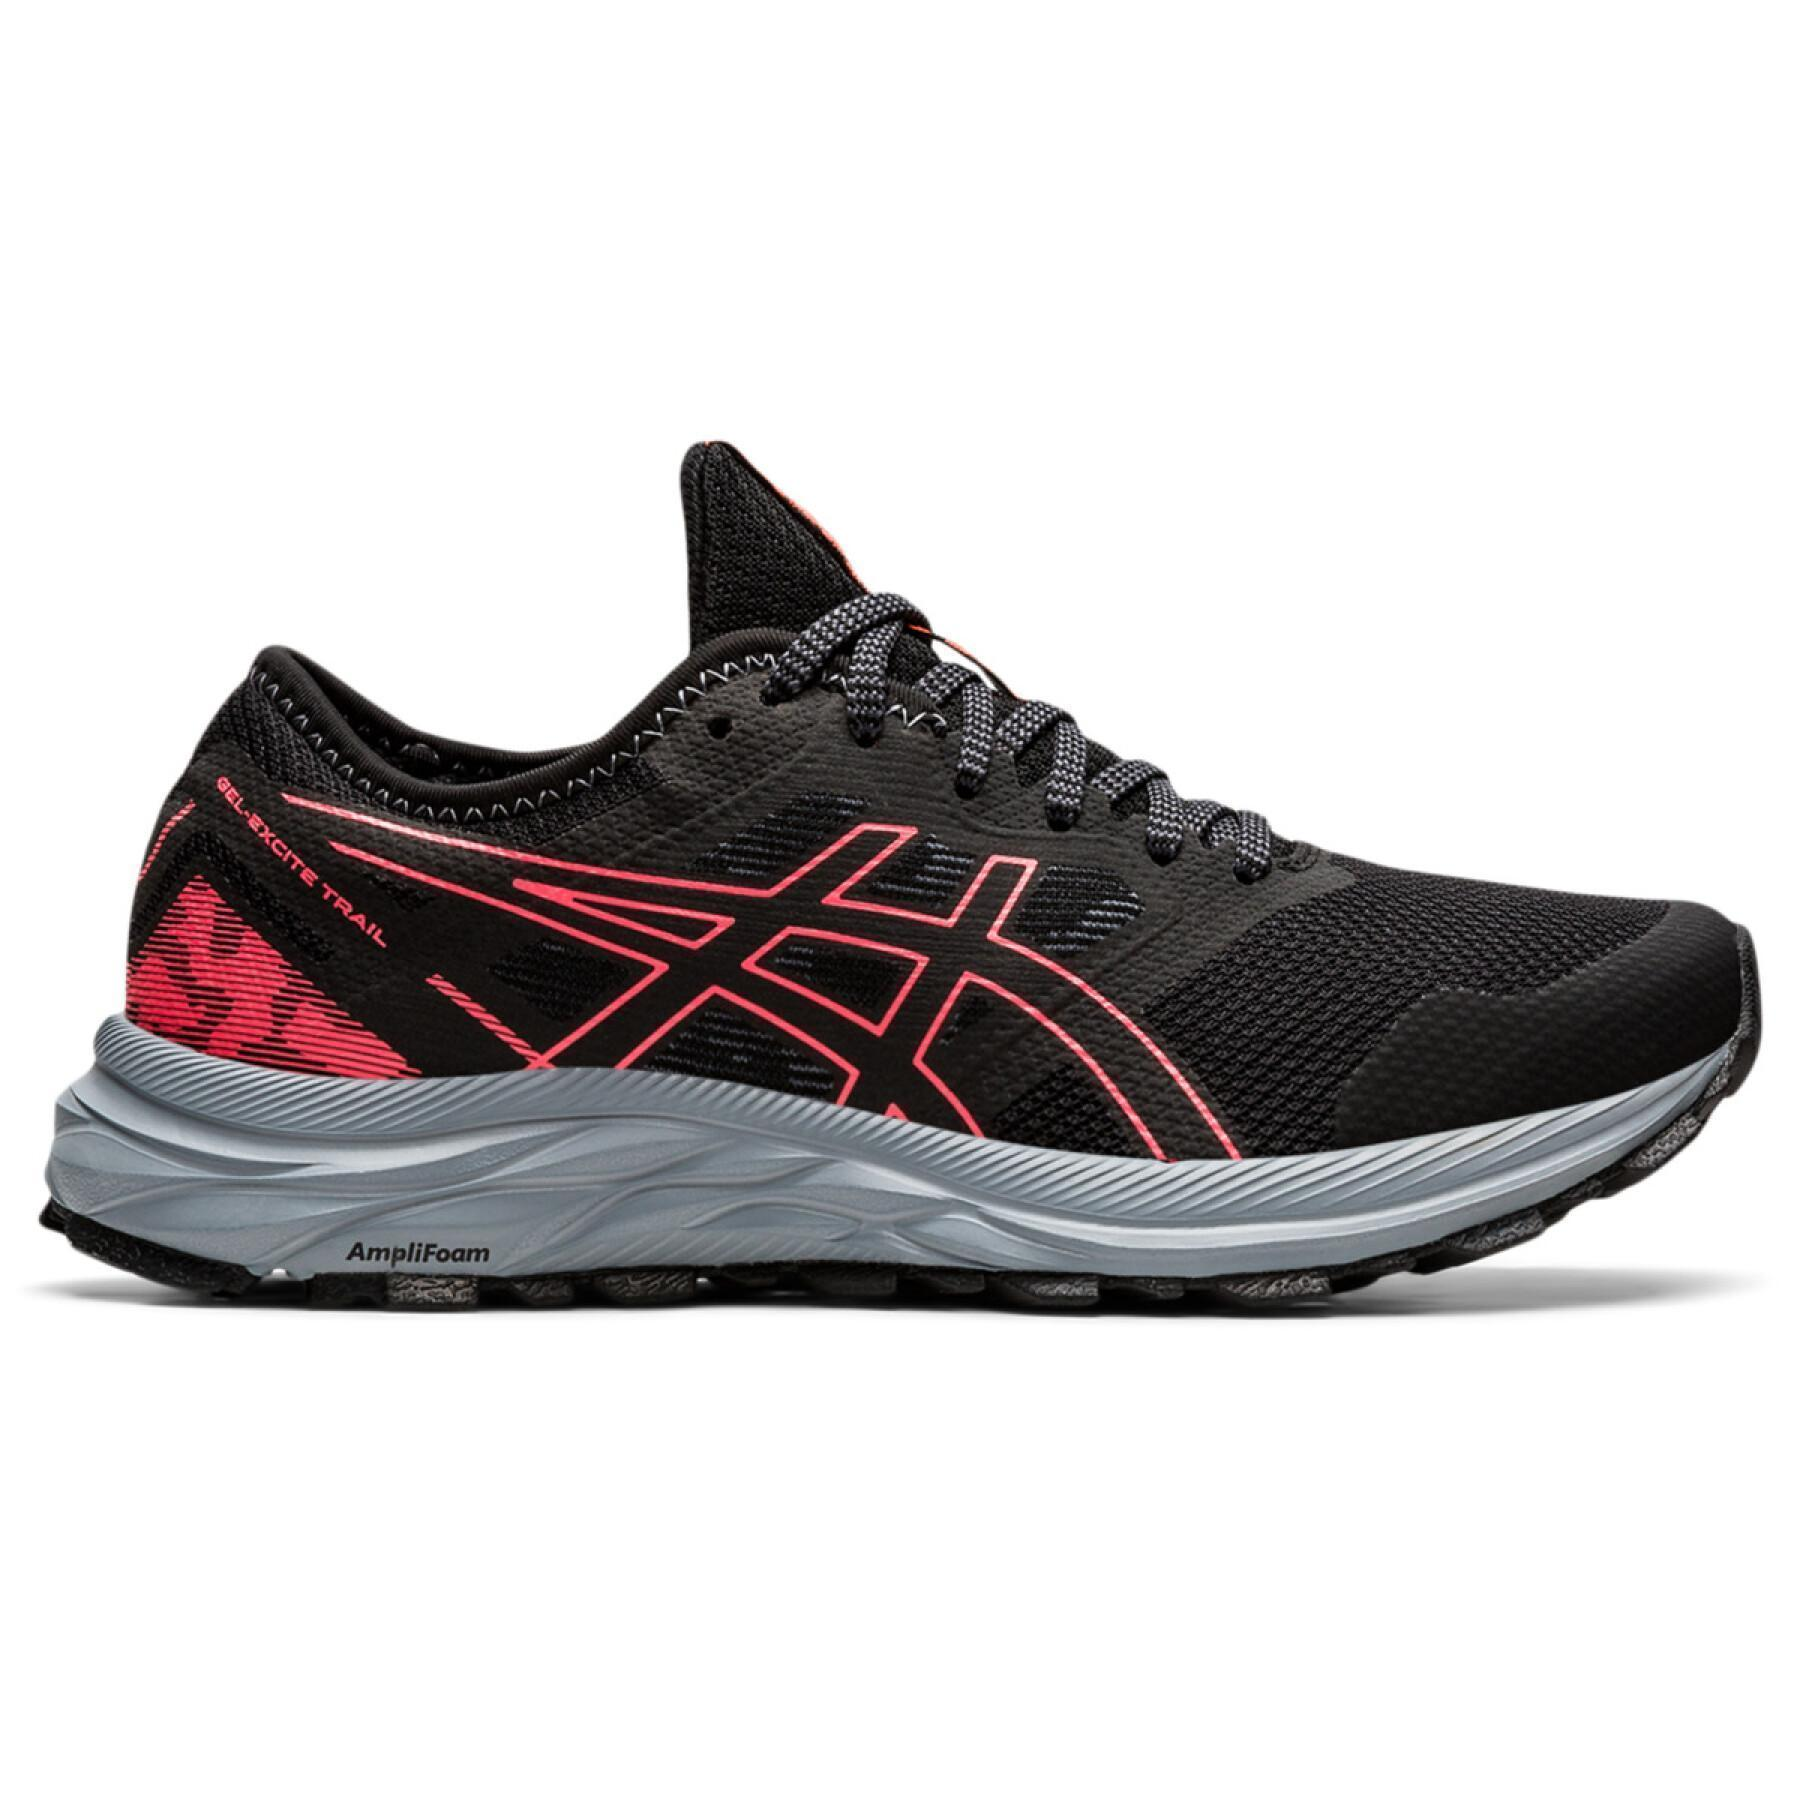 Women's shoes Asics Gel-Excite Trail